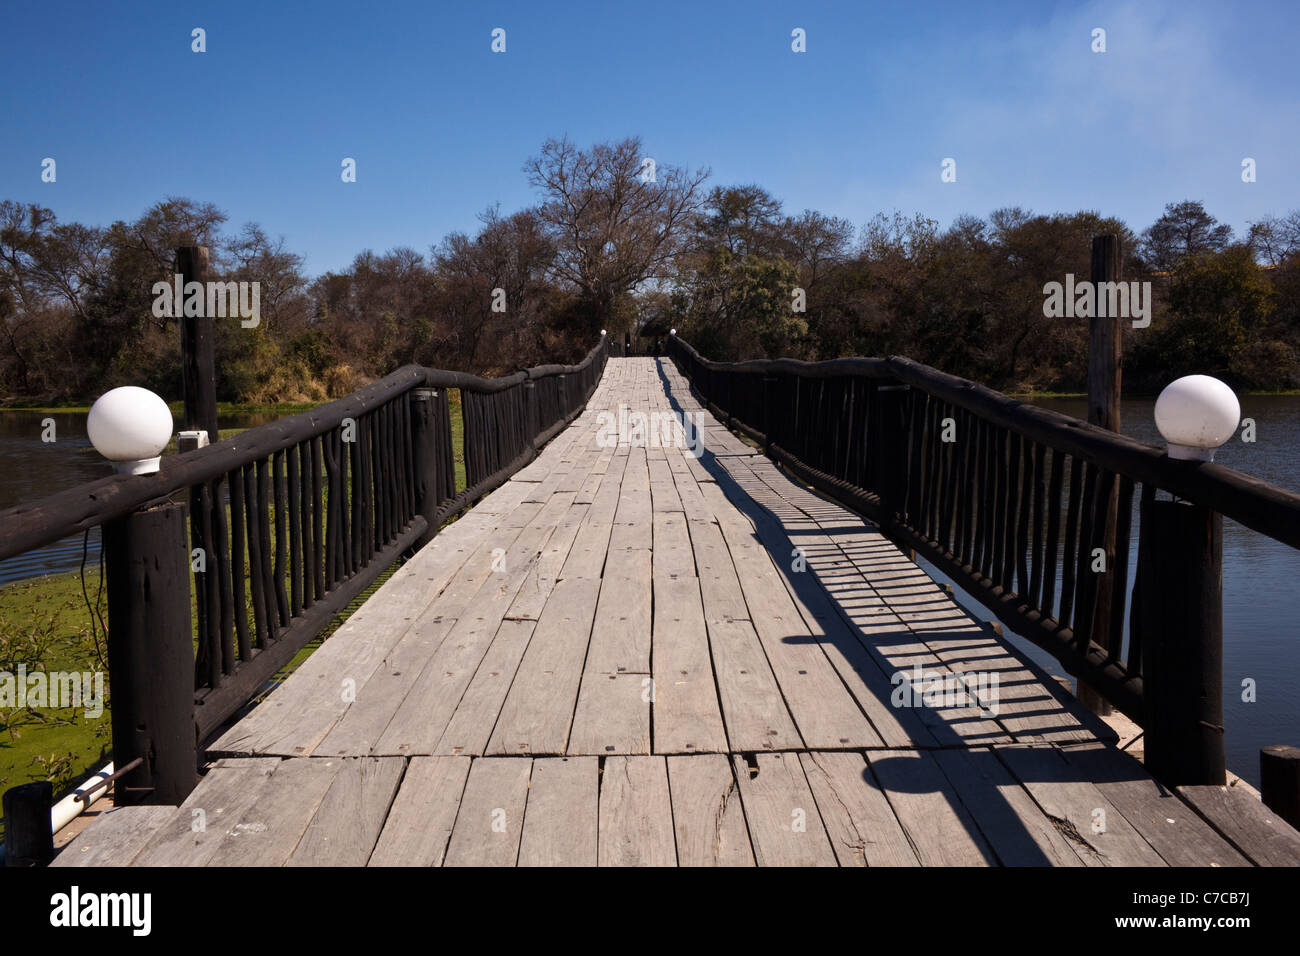 A Wooden Bridge Over A River With Trees And Blue Sky In The